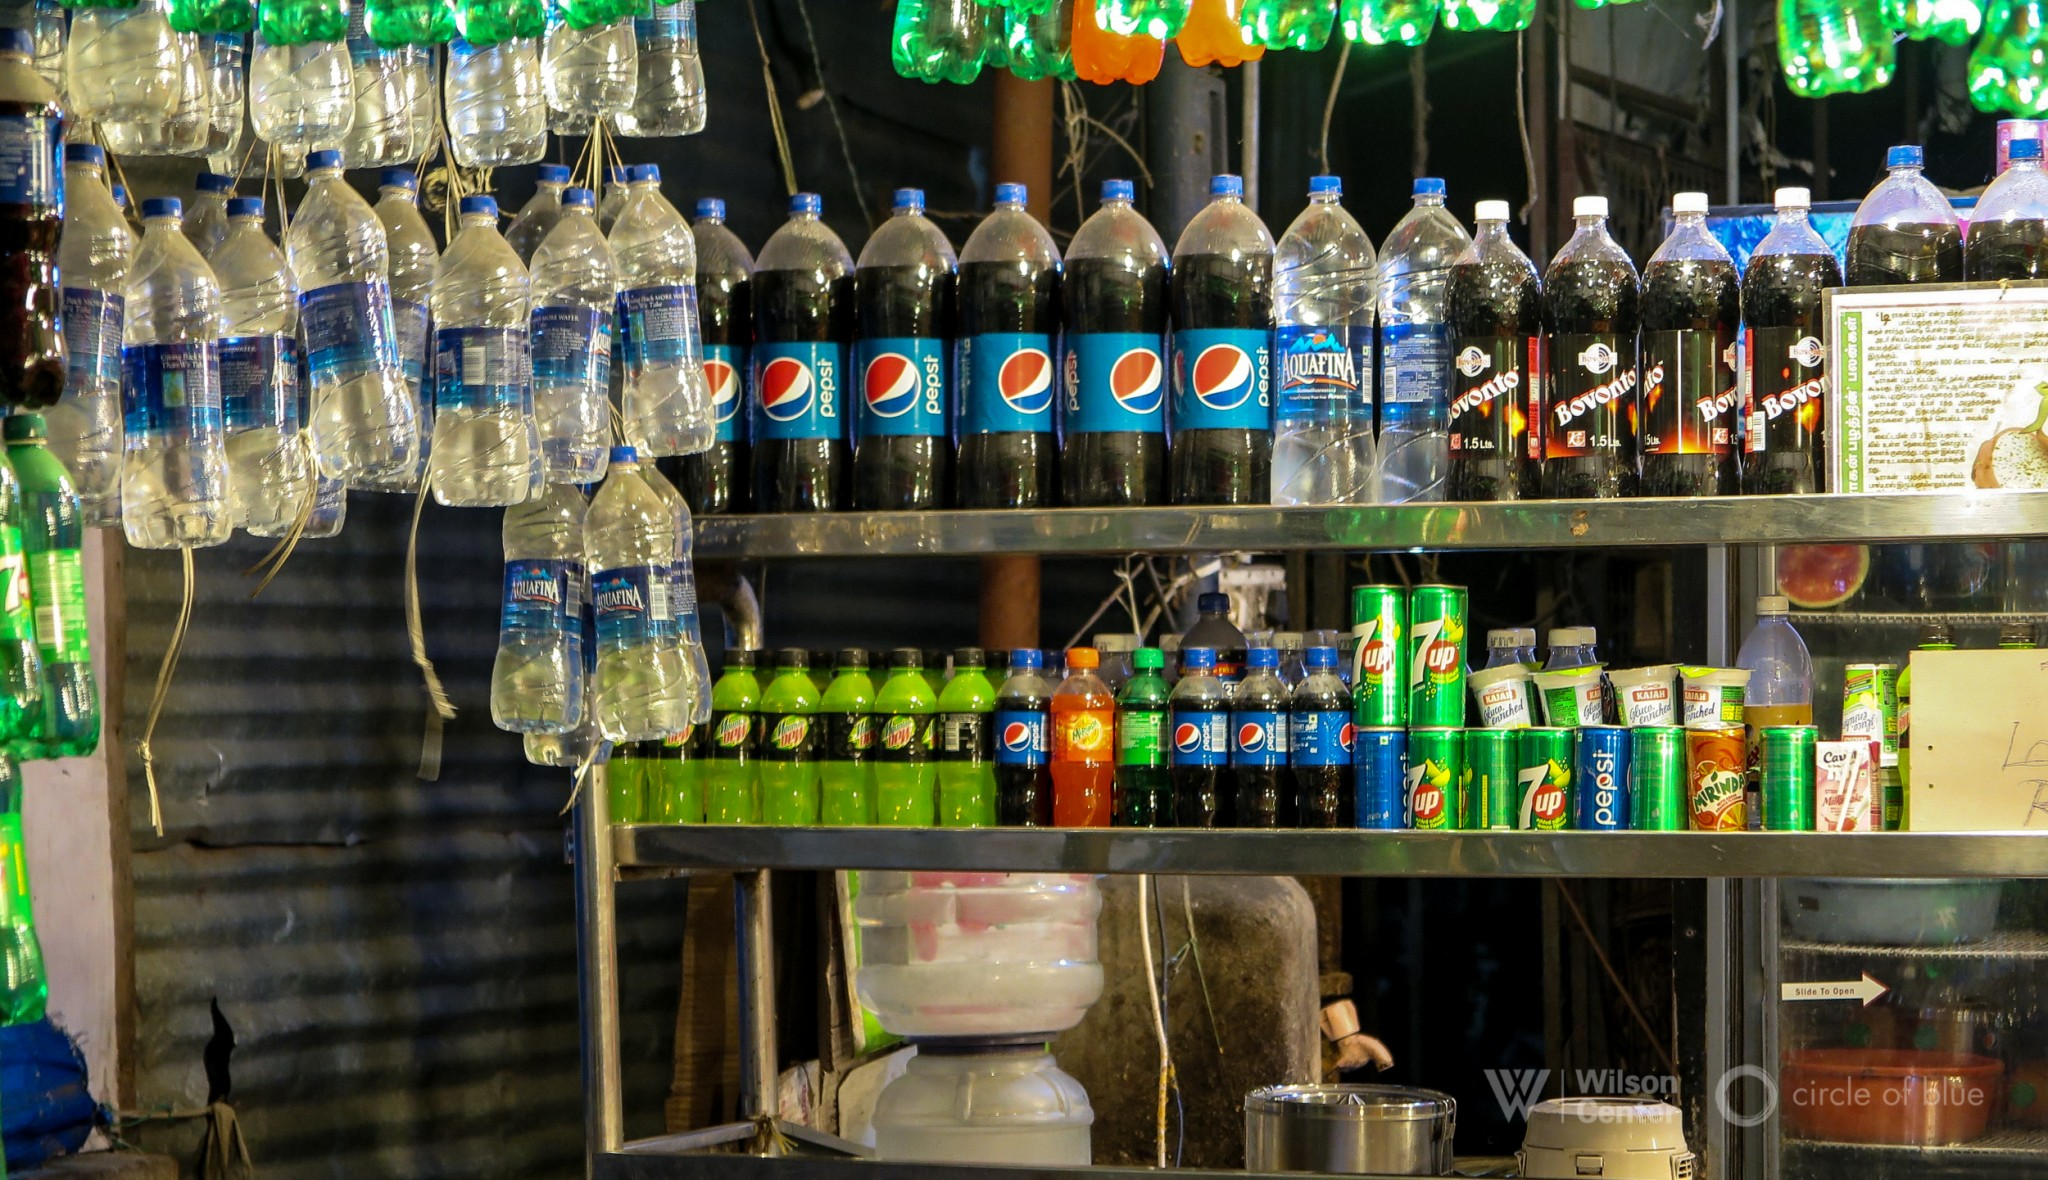 The Right to Life and Water: Drought and Turmoil for Coke